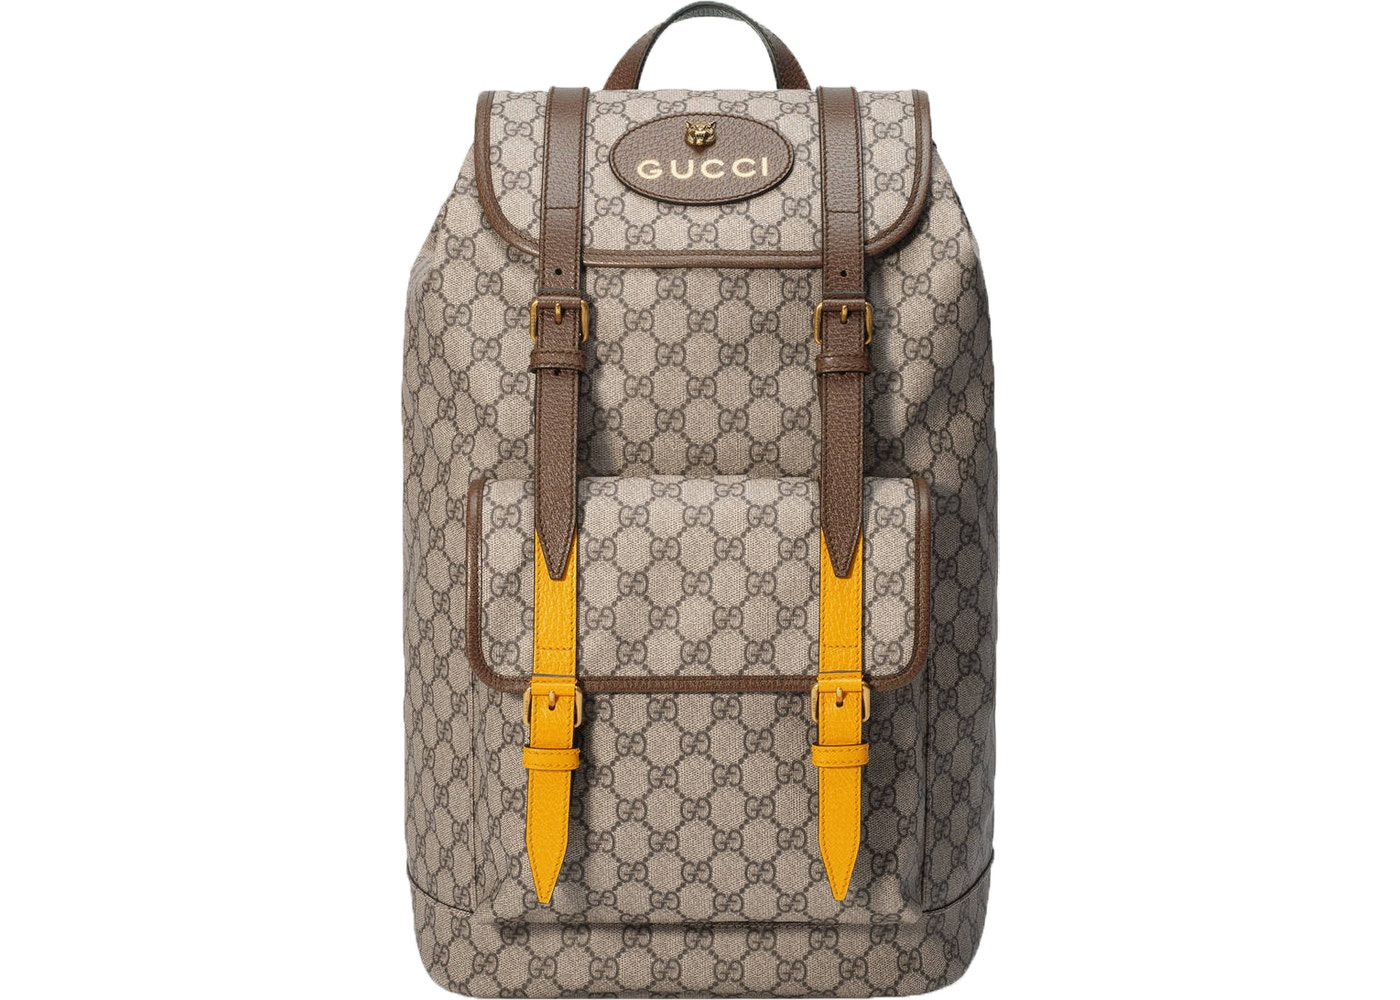 a06277eaf883 Gucci Soft GG Supreme Backpack Monogram GG Feline Head Beige ...